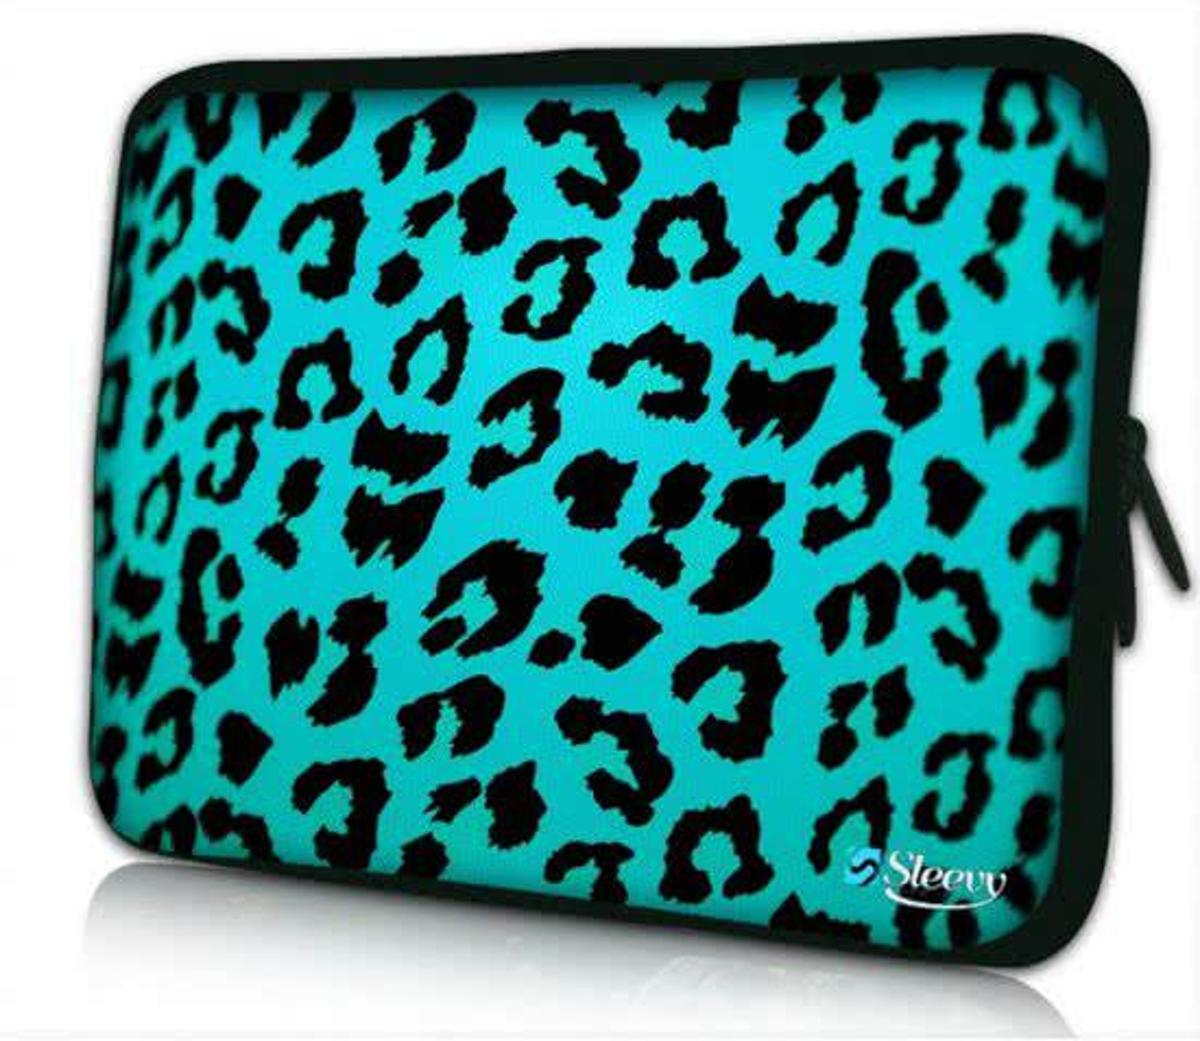 Sleevy 10 laptop/tablet hoes blauwe panterprint - tabletsleeve - tablet sleeve - ipad sleeve